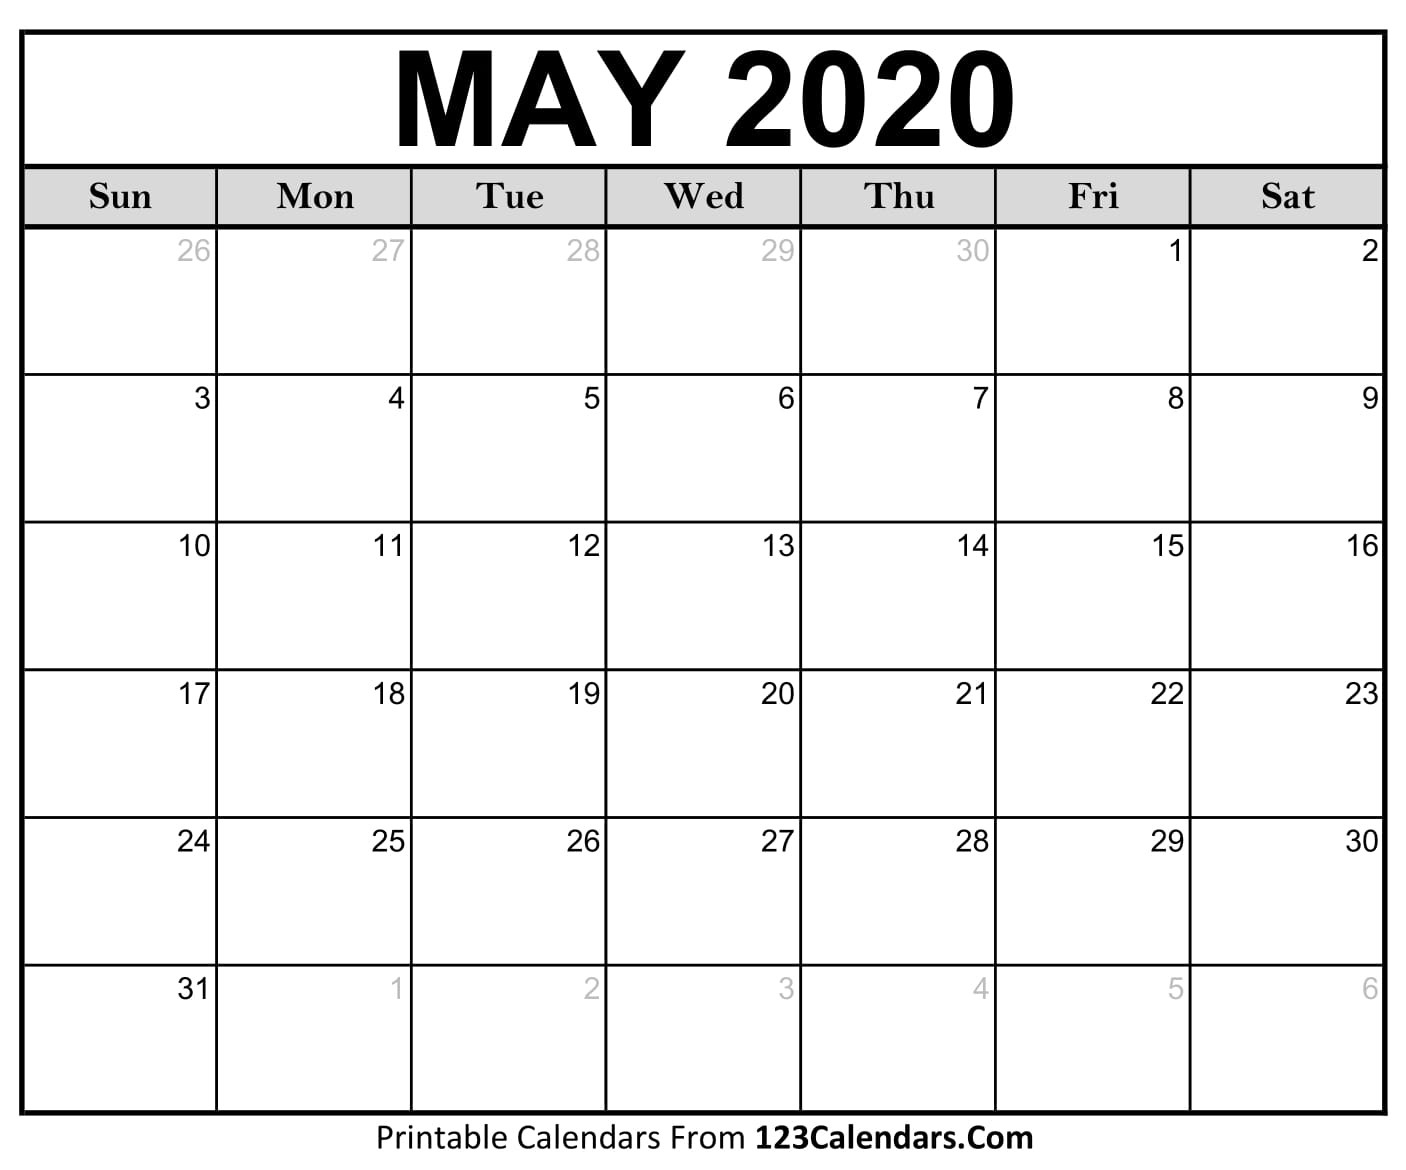 May 2020 Printable Calendar | 123Calendars  Where I Print A Full Page Monthly Calendar For 2020